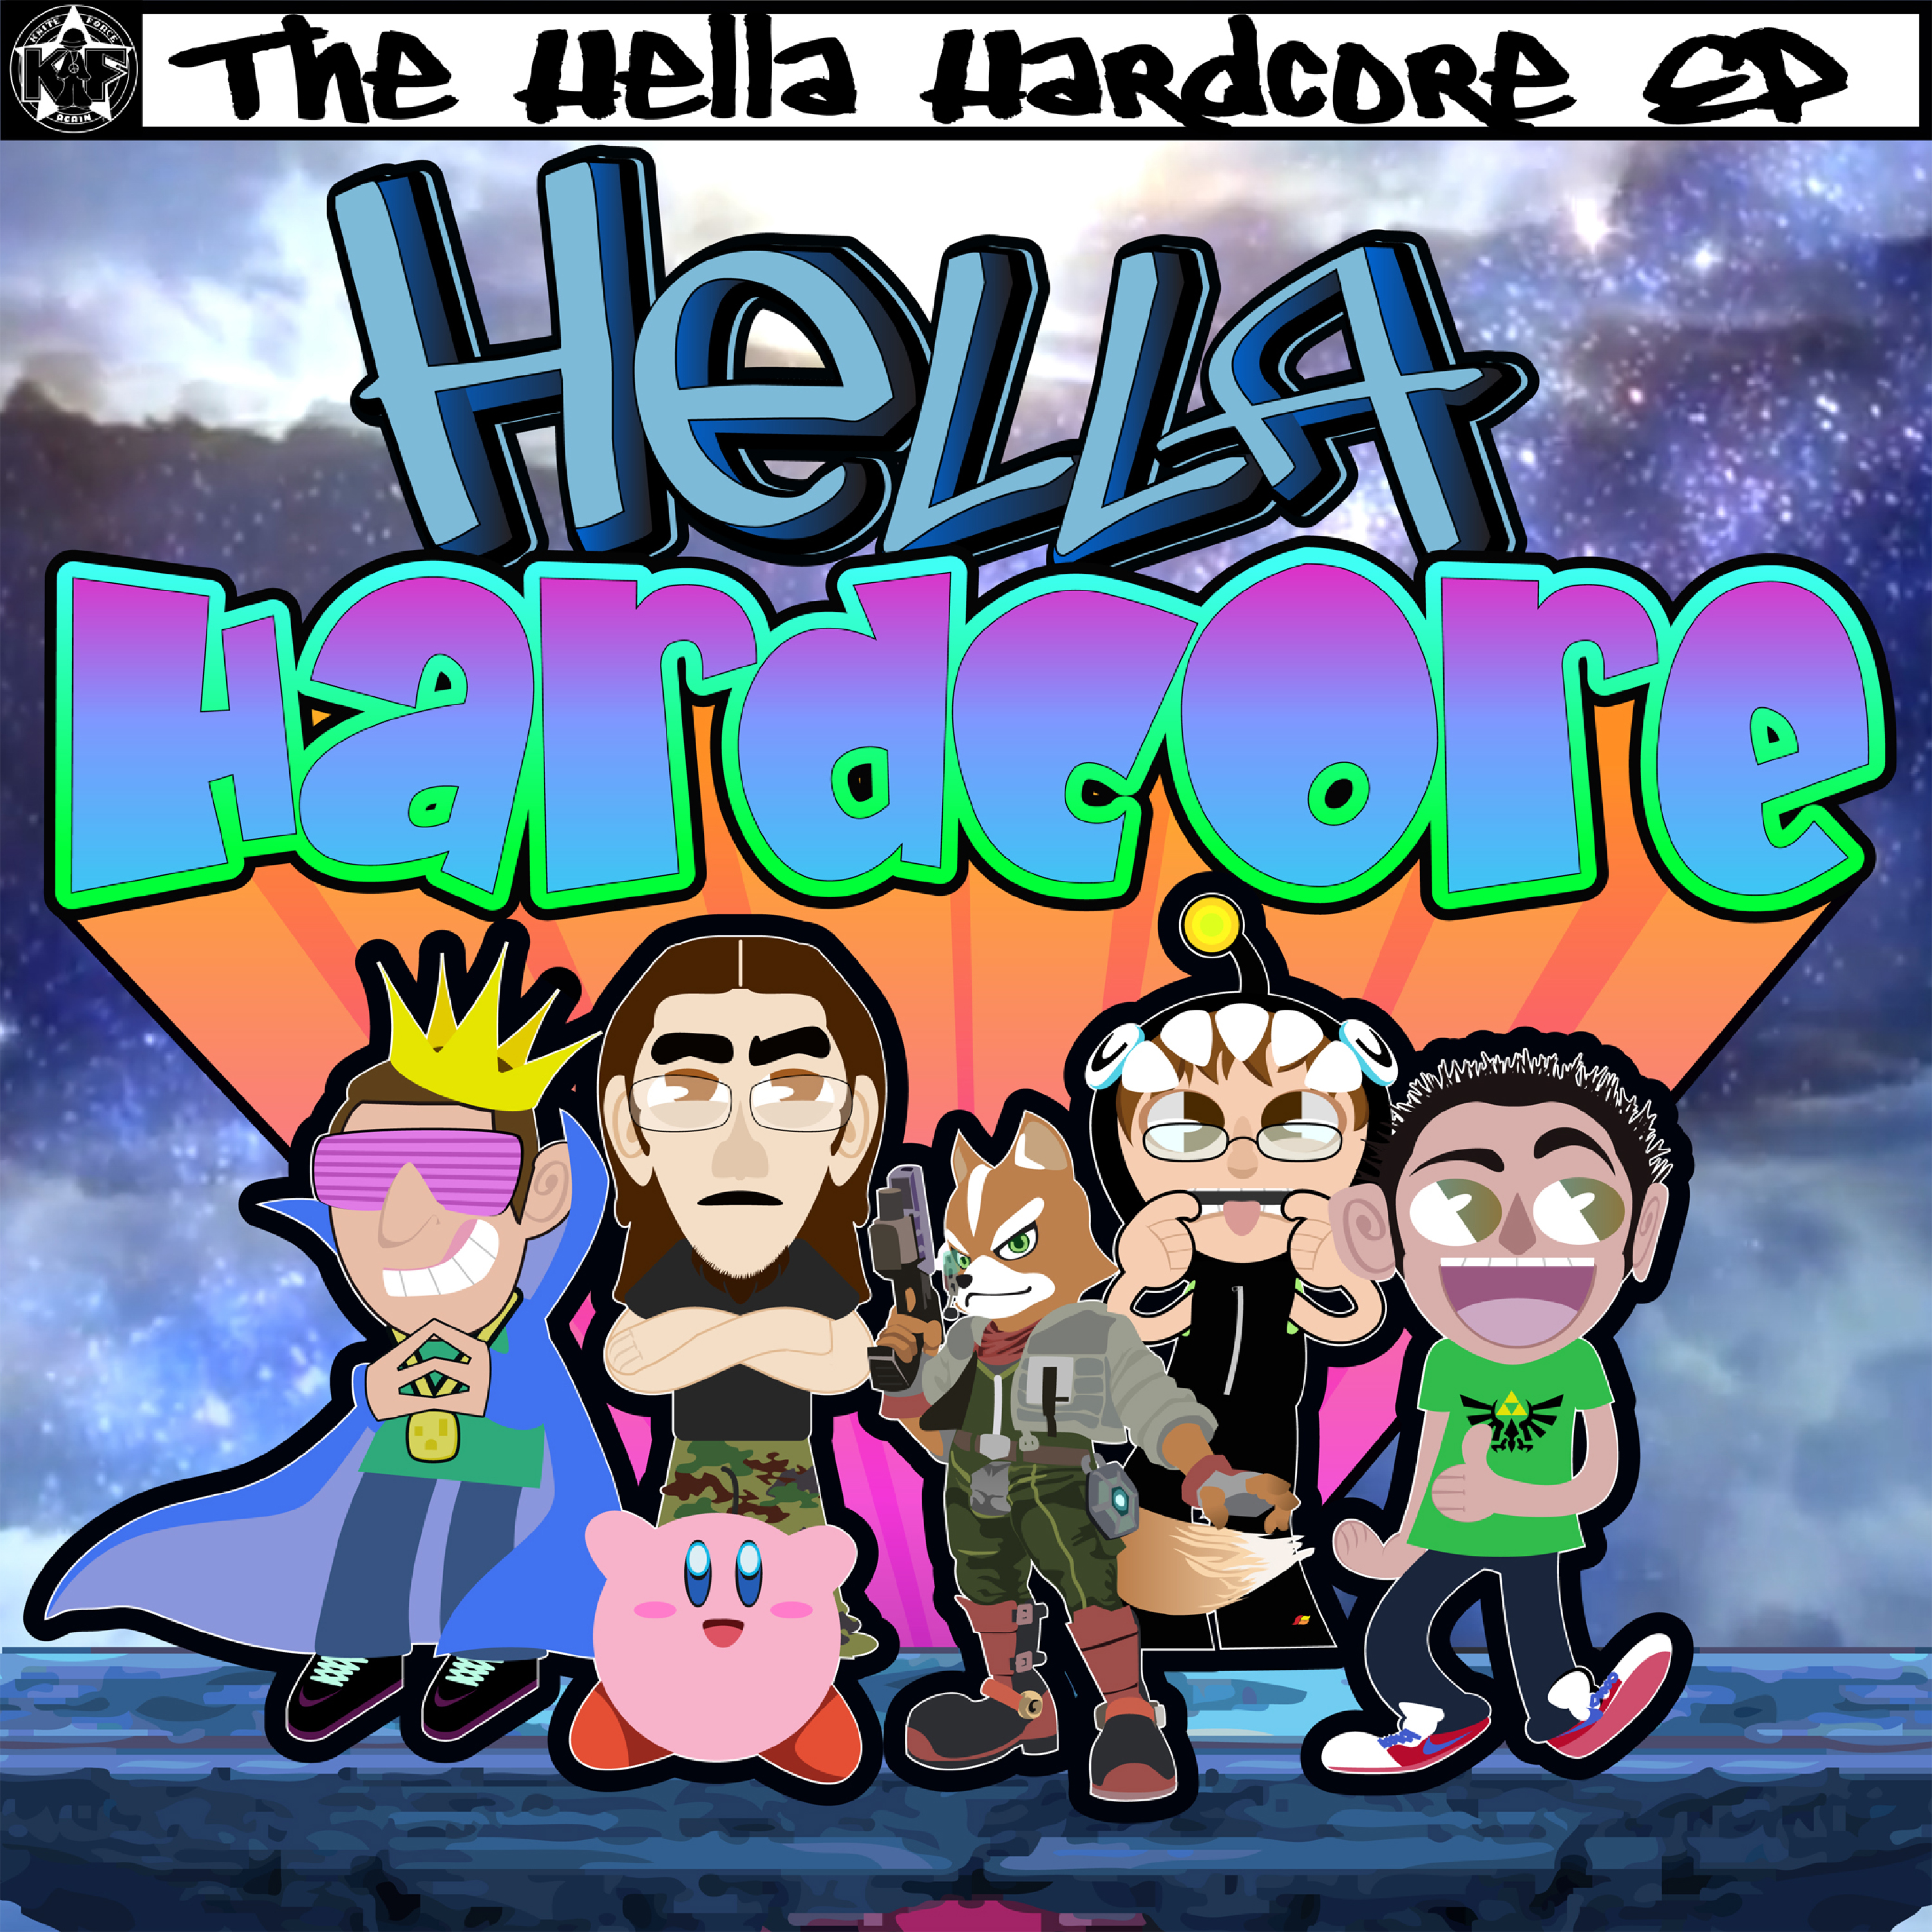 [KFA058] Various - The Hella Hardcore EP (Digital Only)